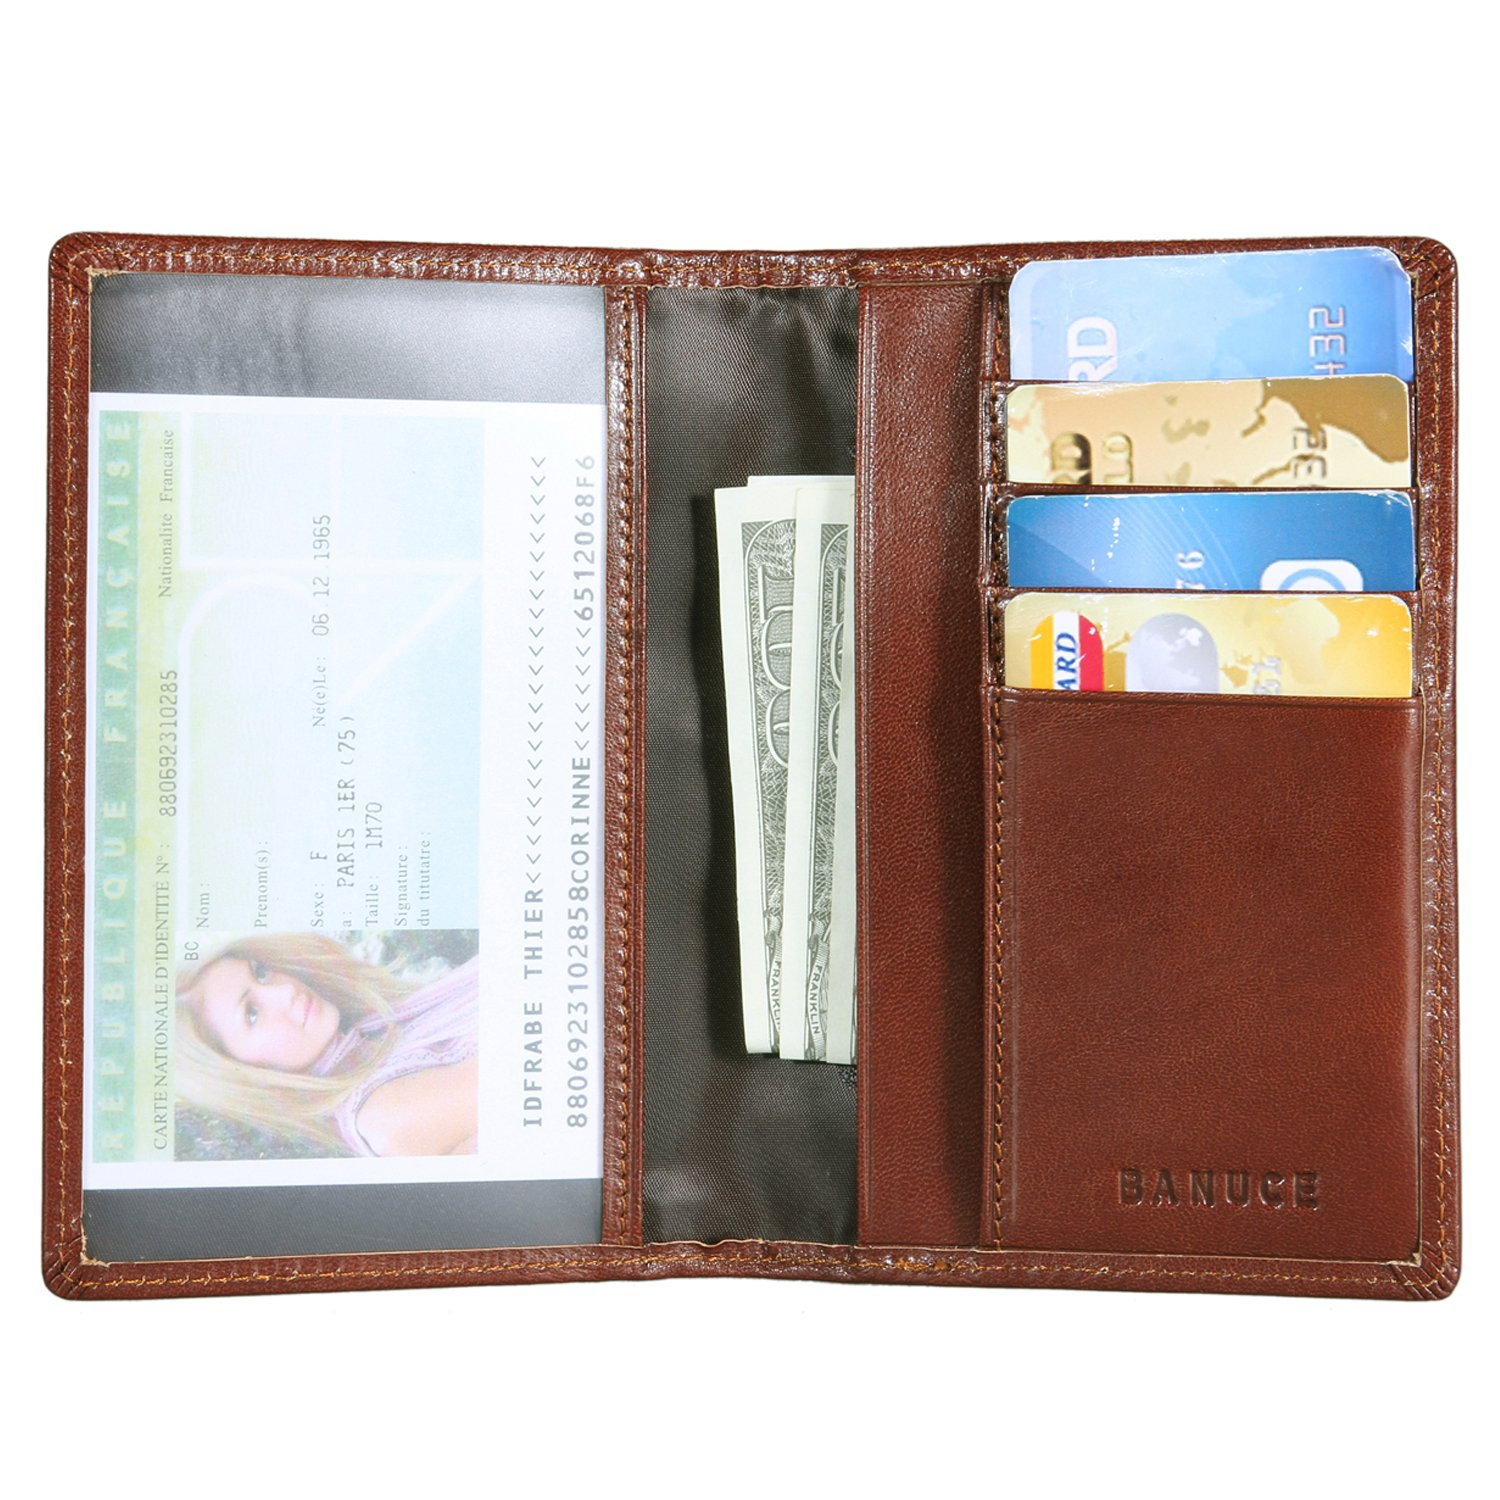 Banuce Italian Leather Passport Holder for Men Women Travel Passport Wallet Cover